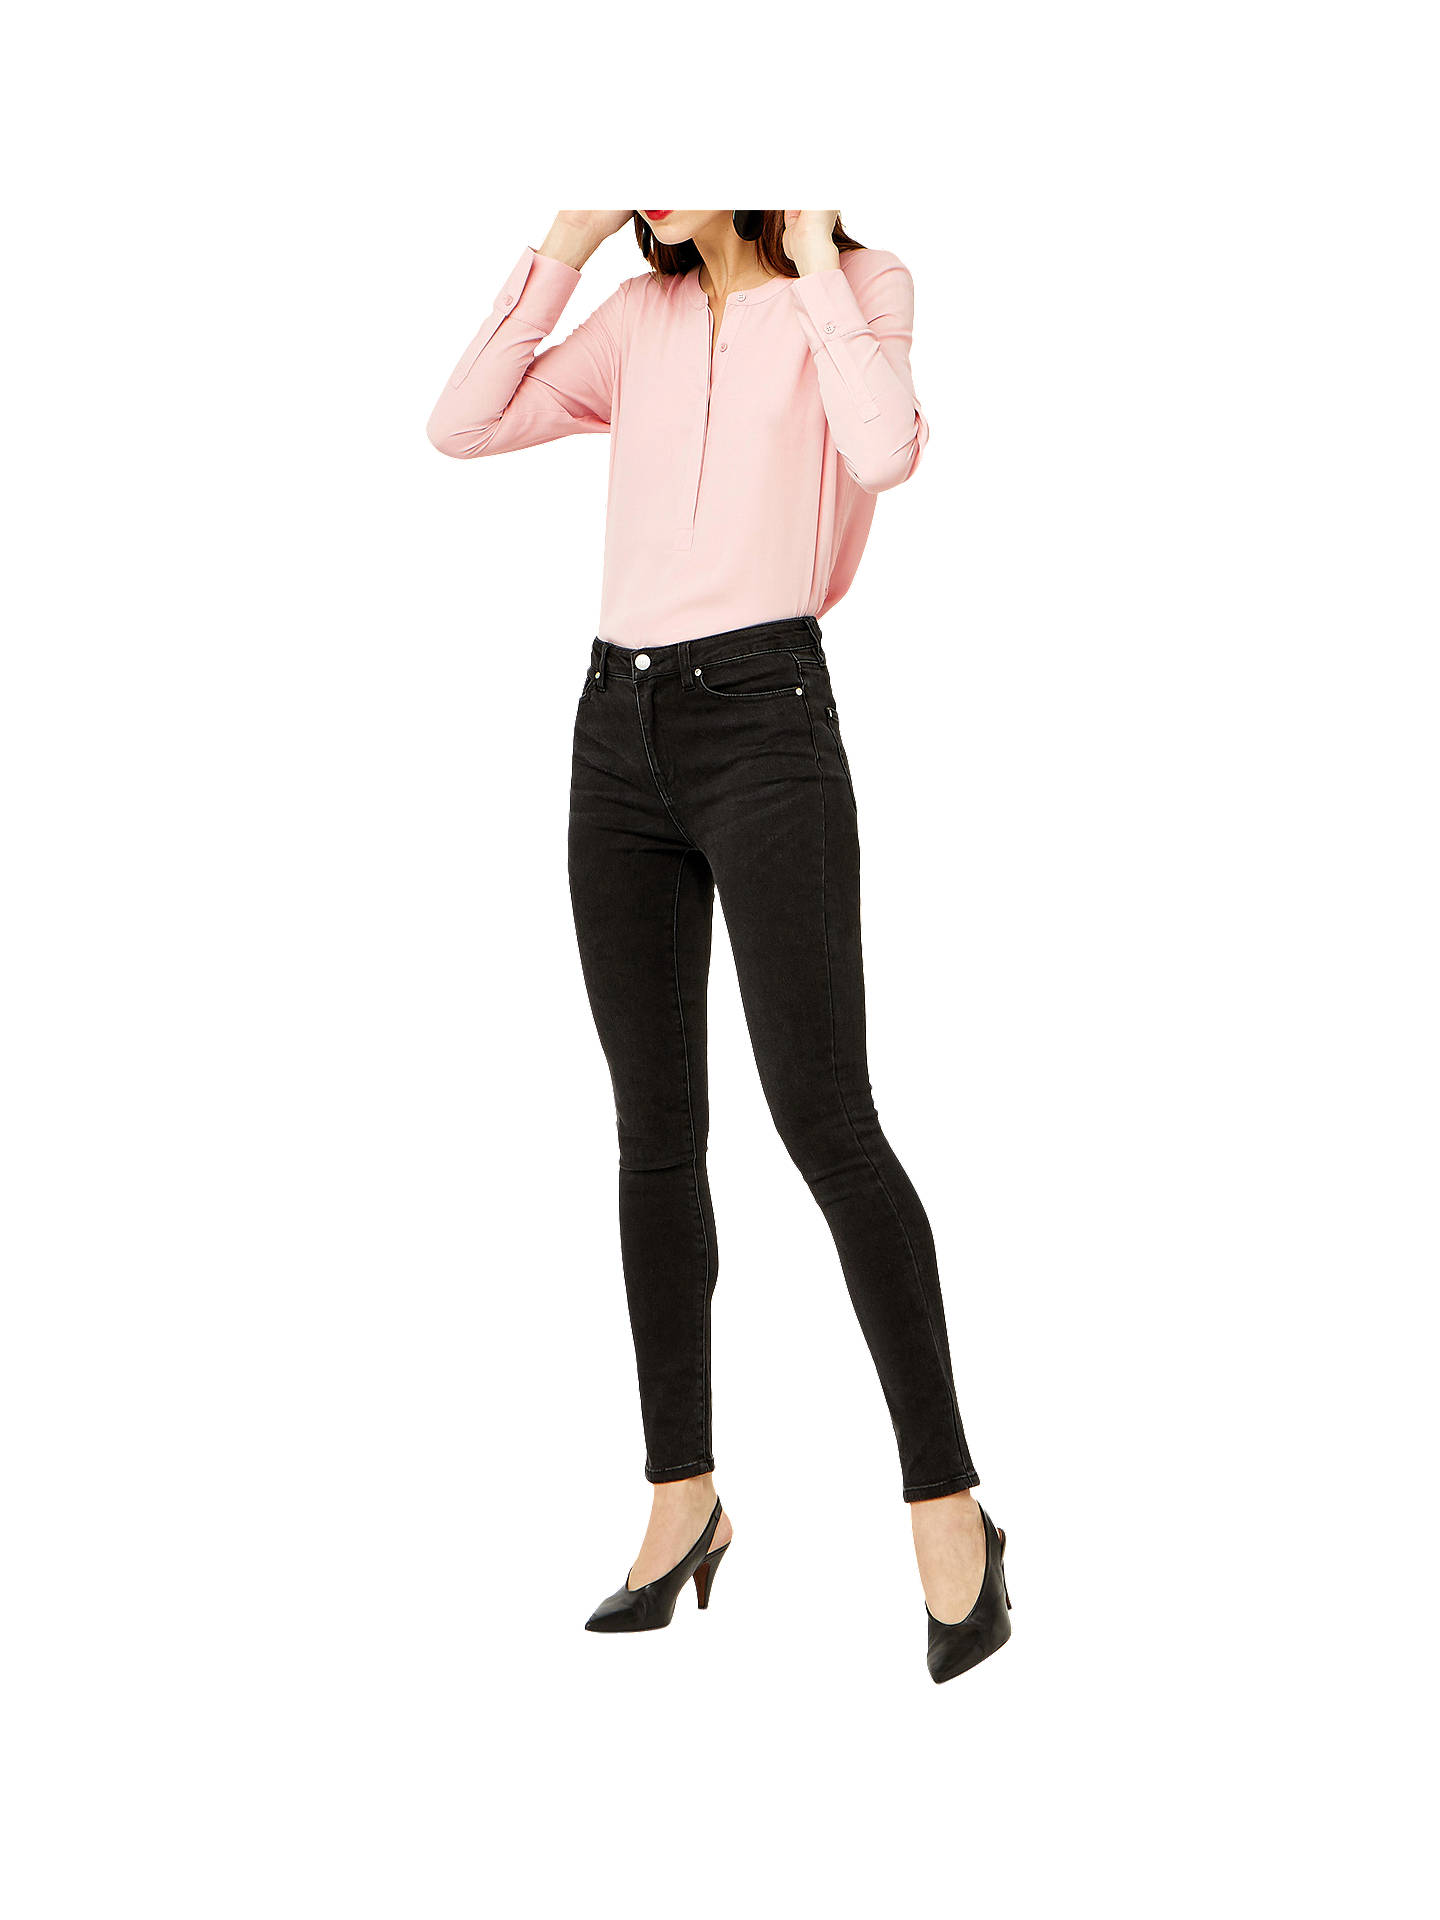 BuyWarehouse Long Sleeve Button Side Blouse, Light Pink, 6 Online at johnlewis.com